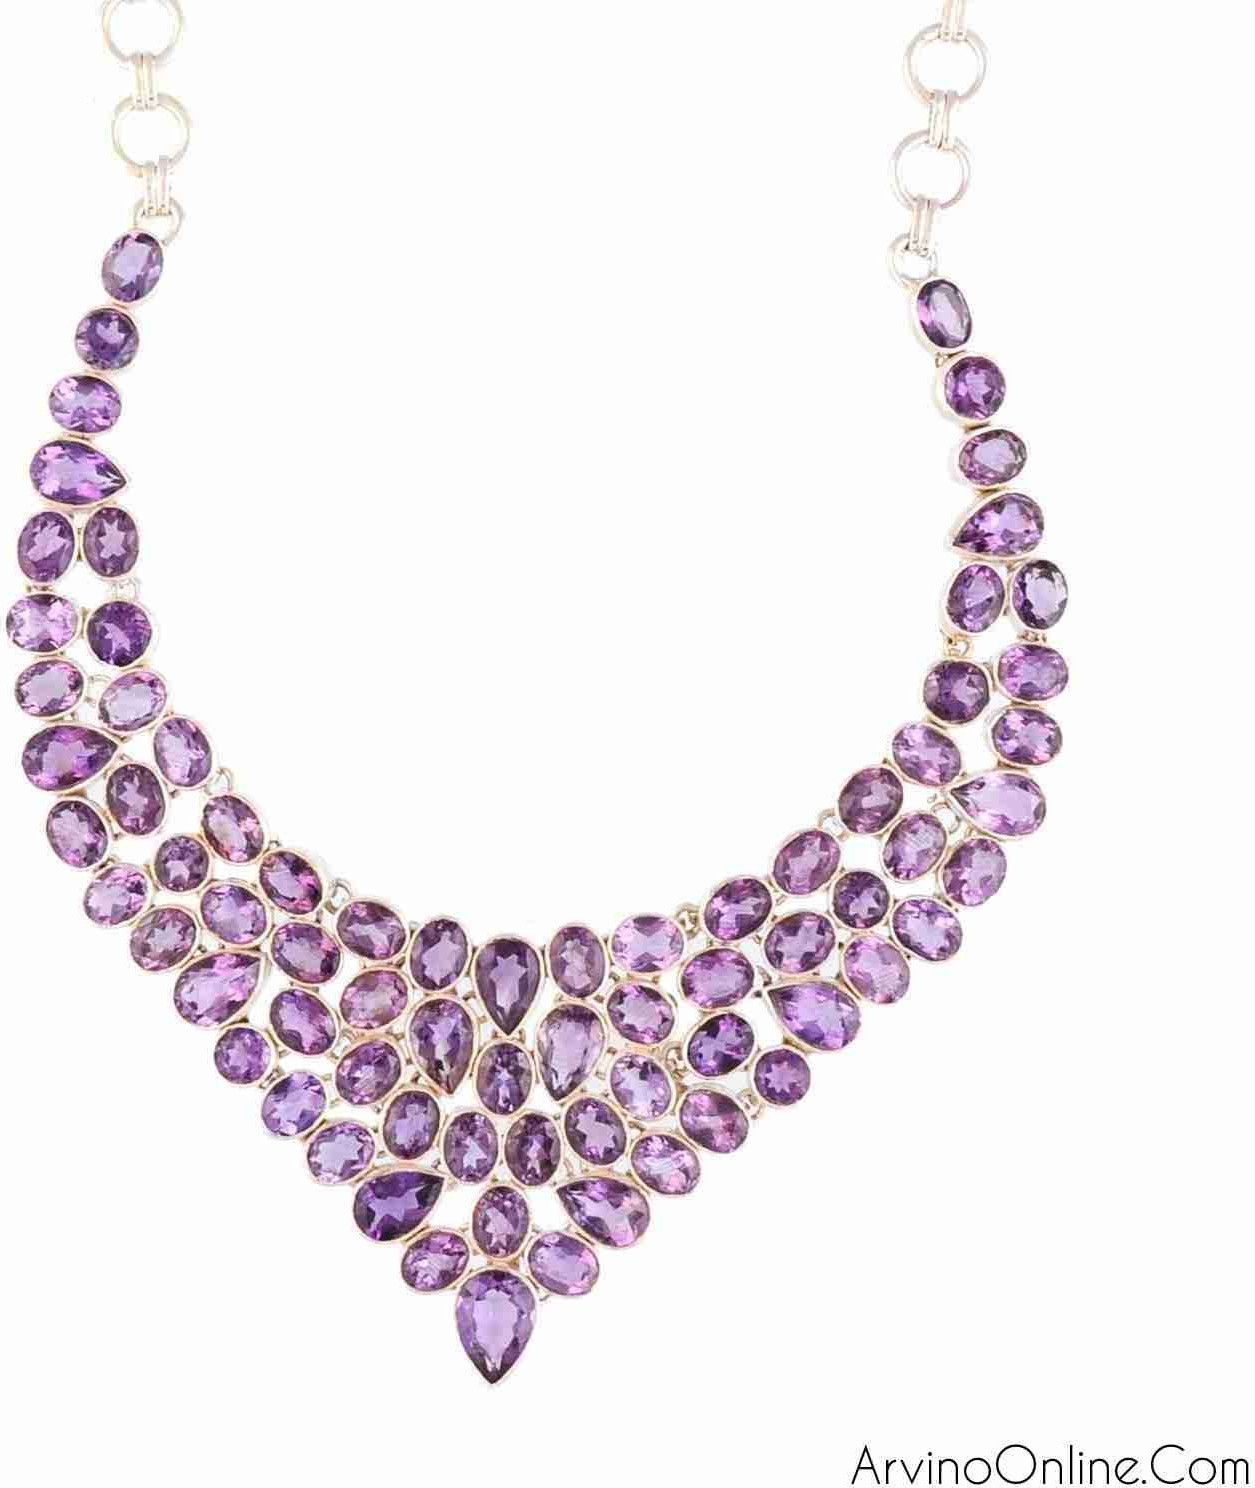 925 Sterling Silver Necklace With Amethyst Gemstone